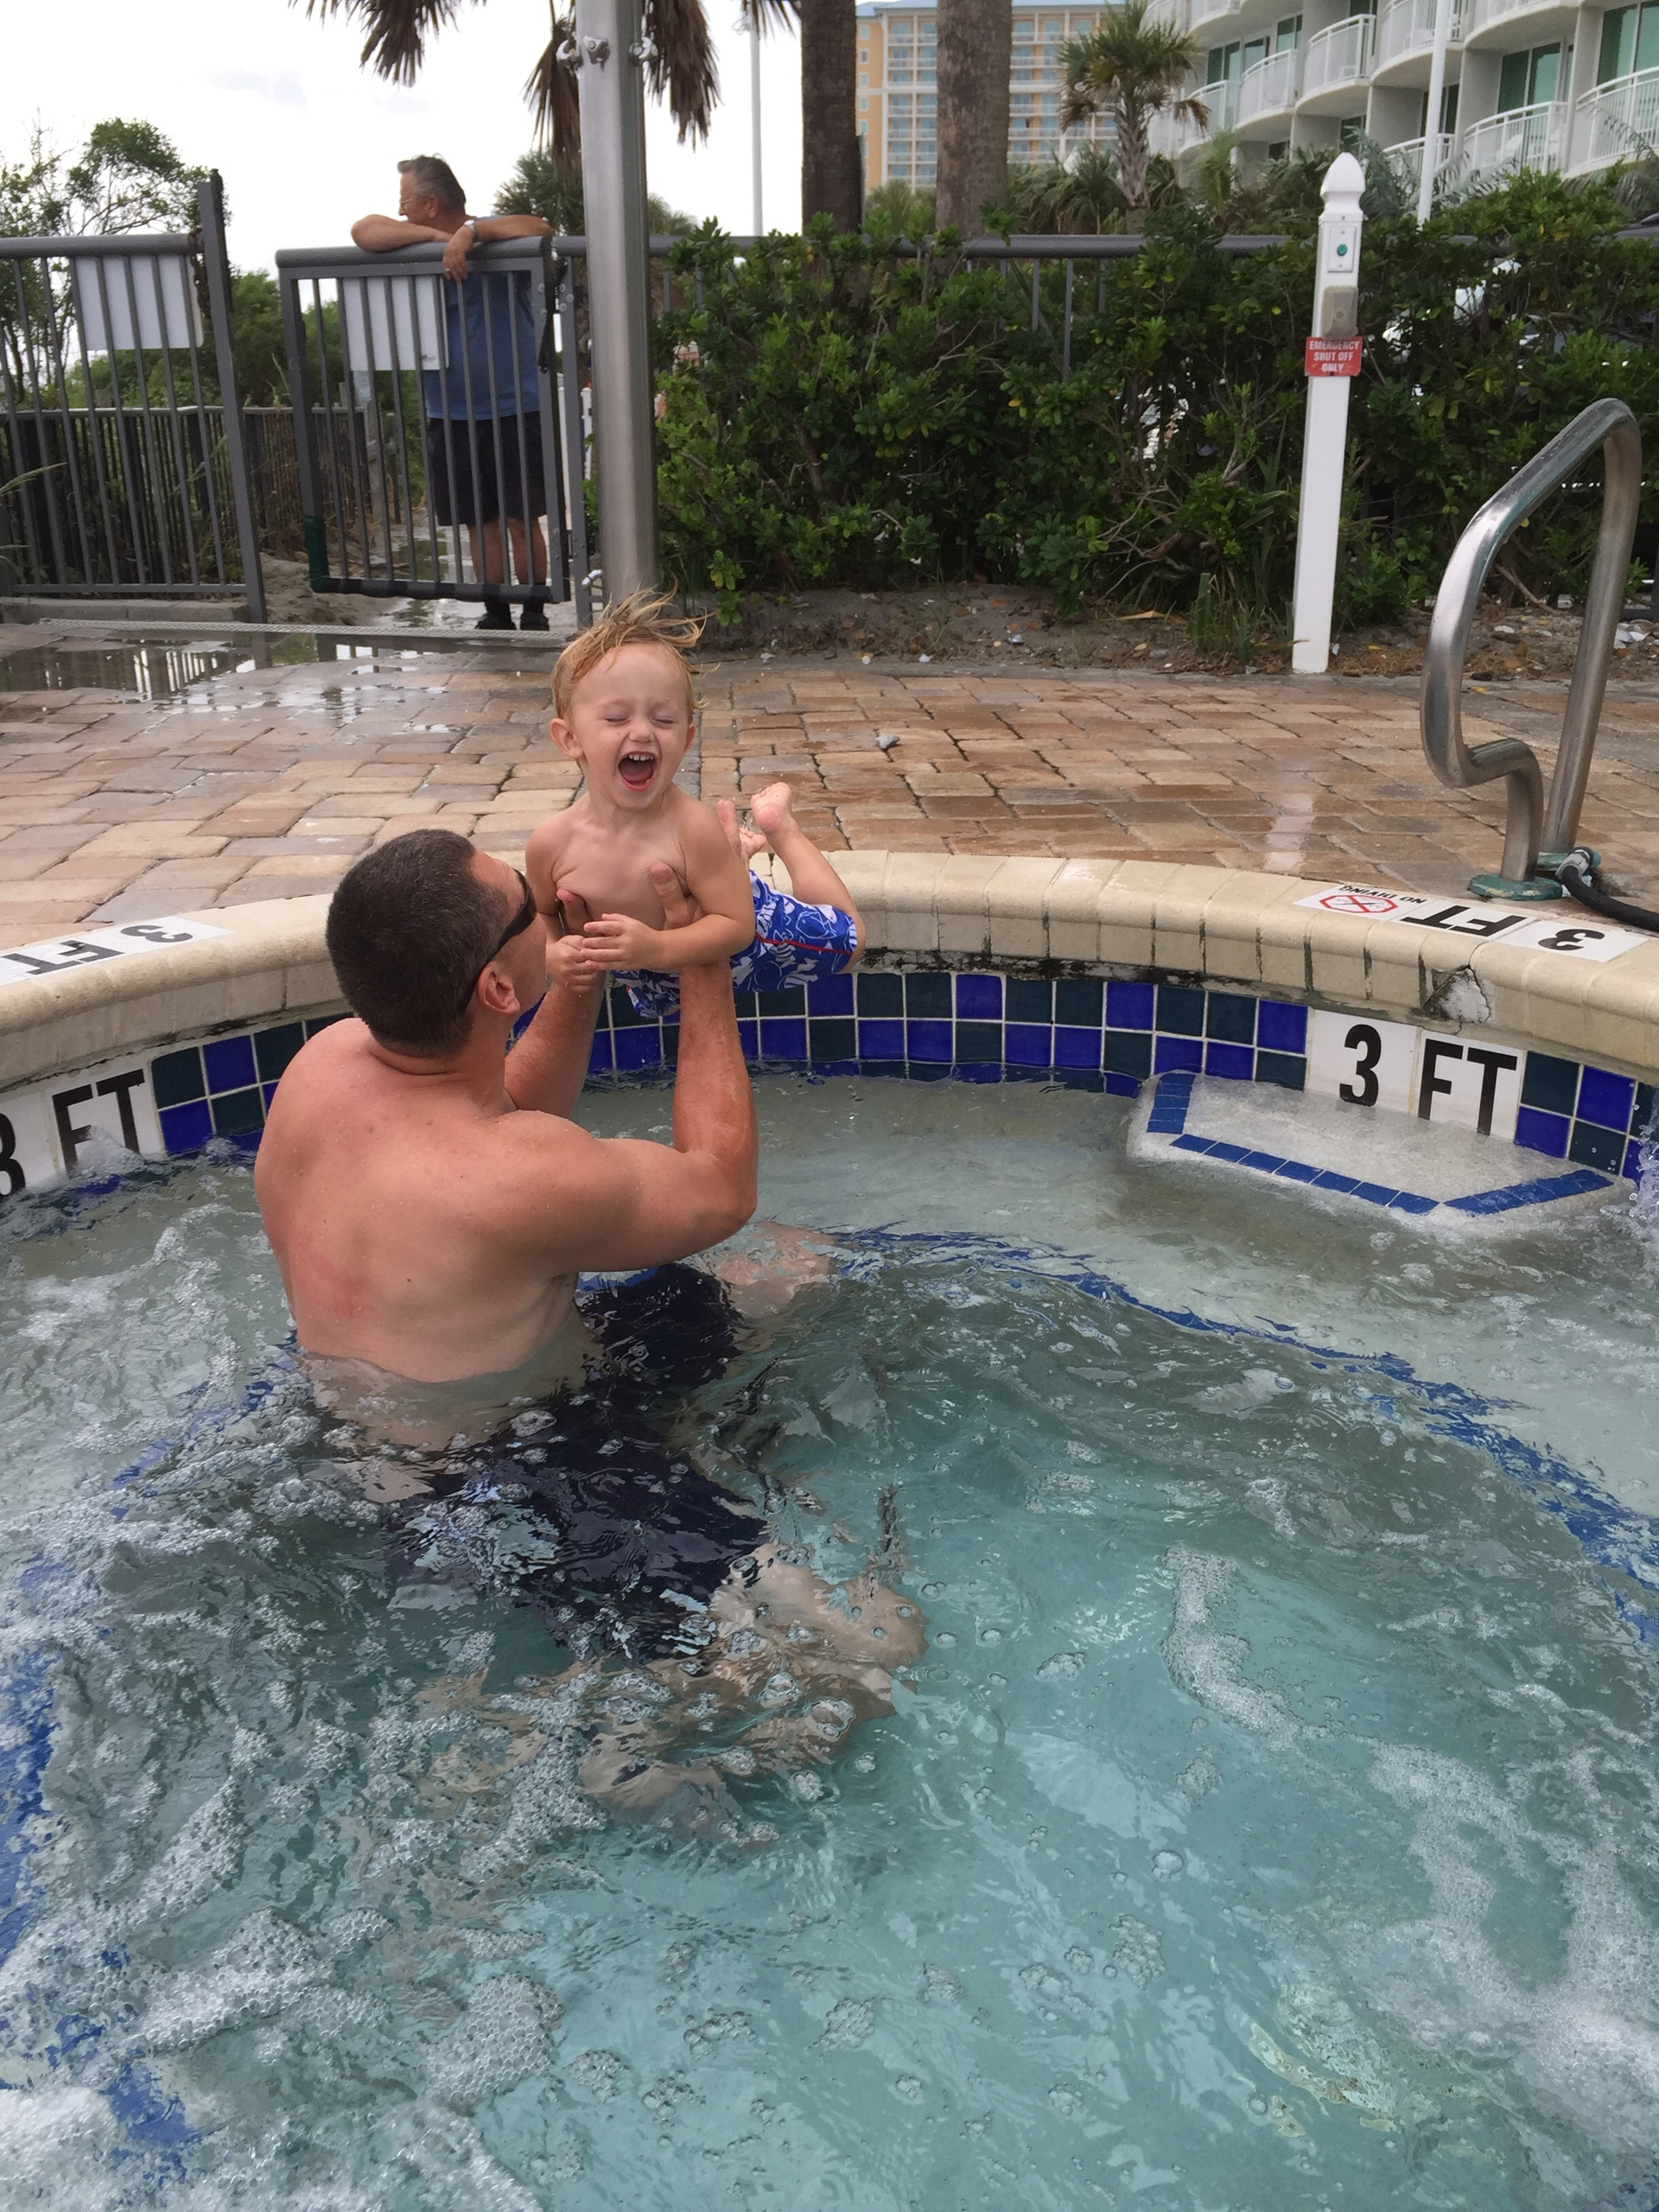 What's more fun than jumping into daddy's arms in the hot tub?